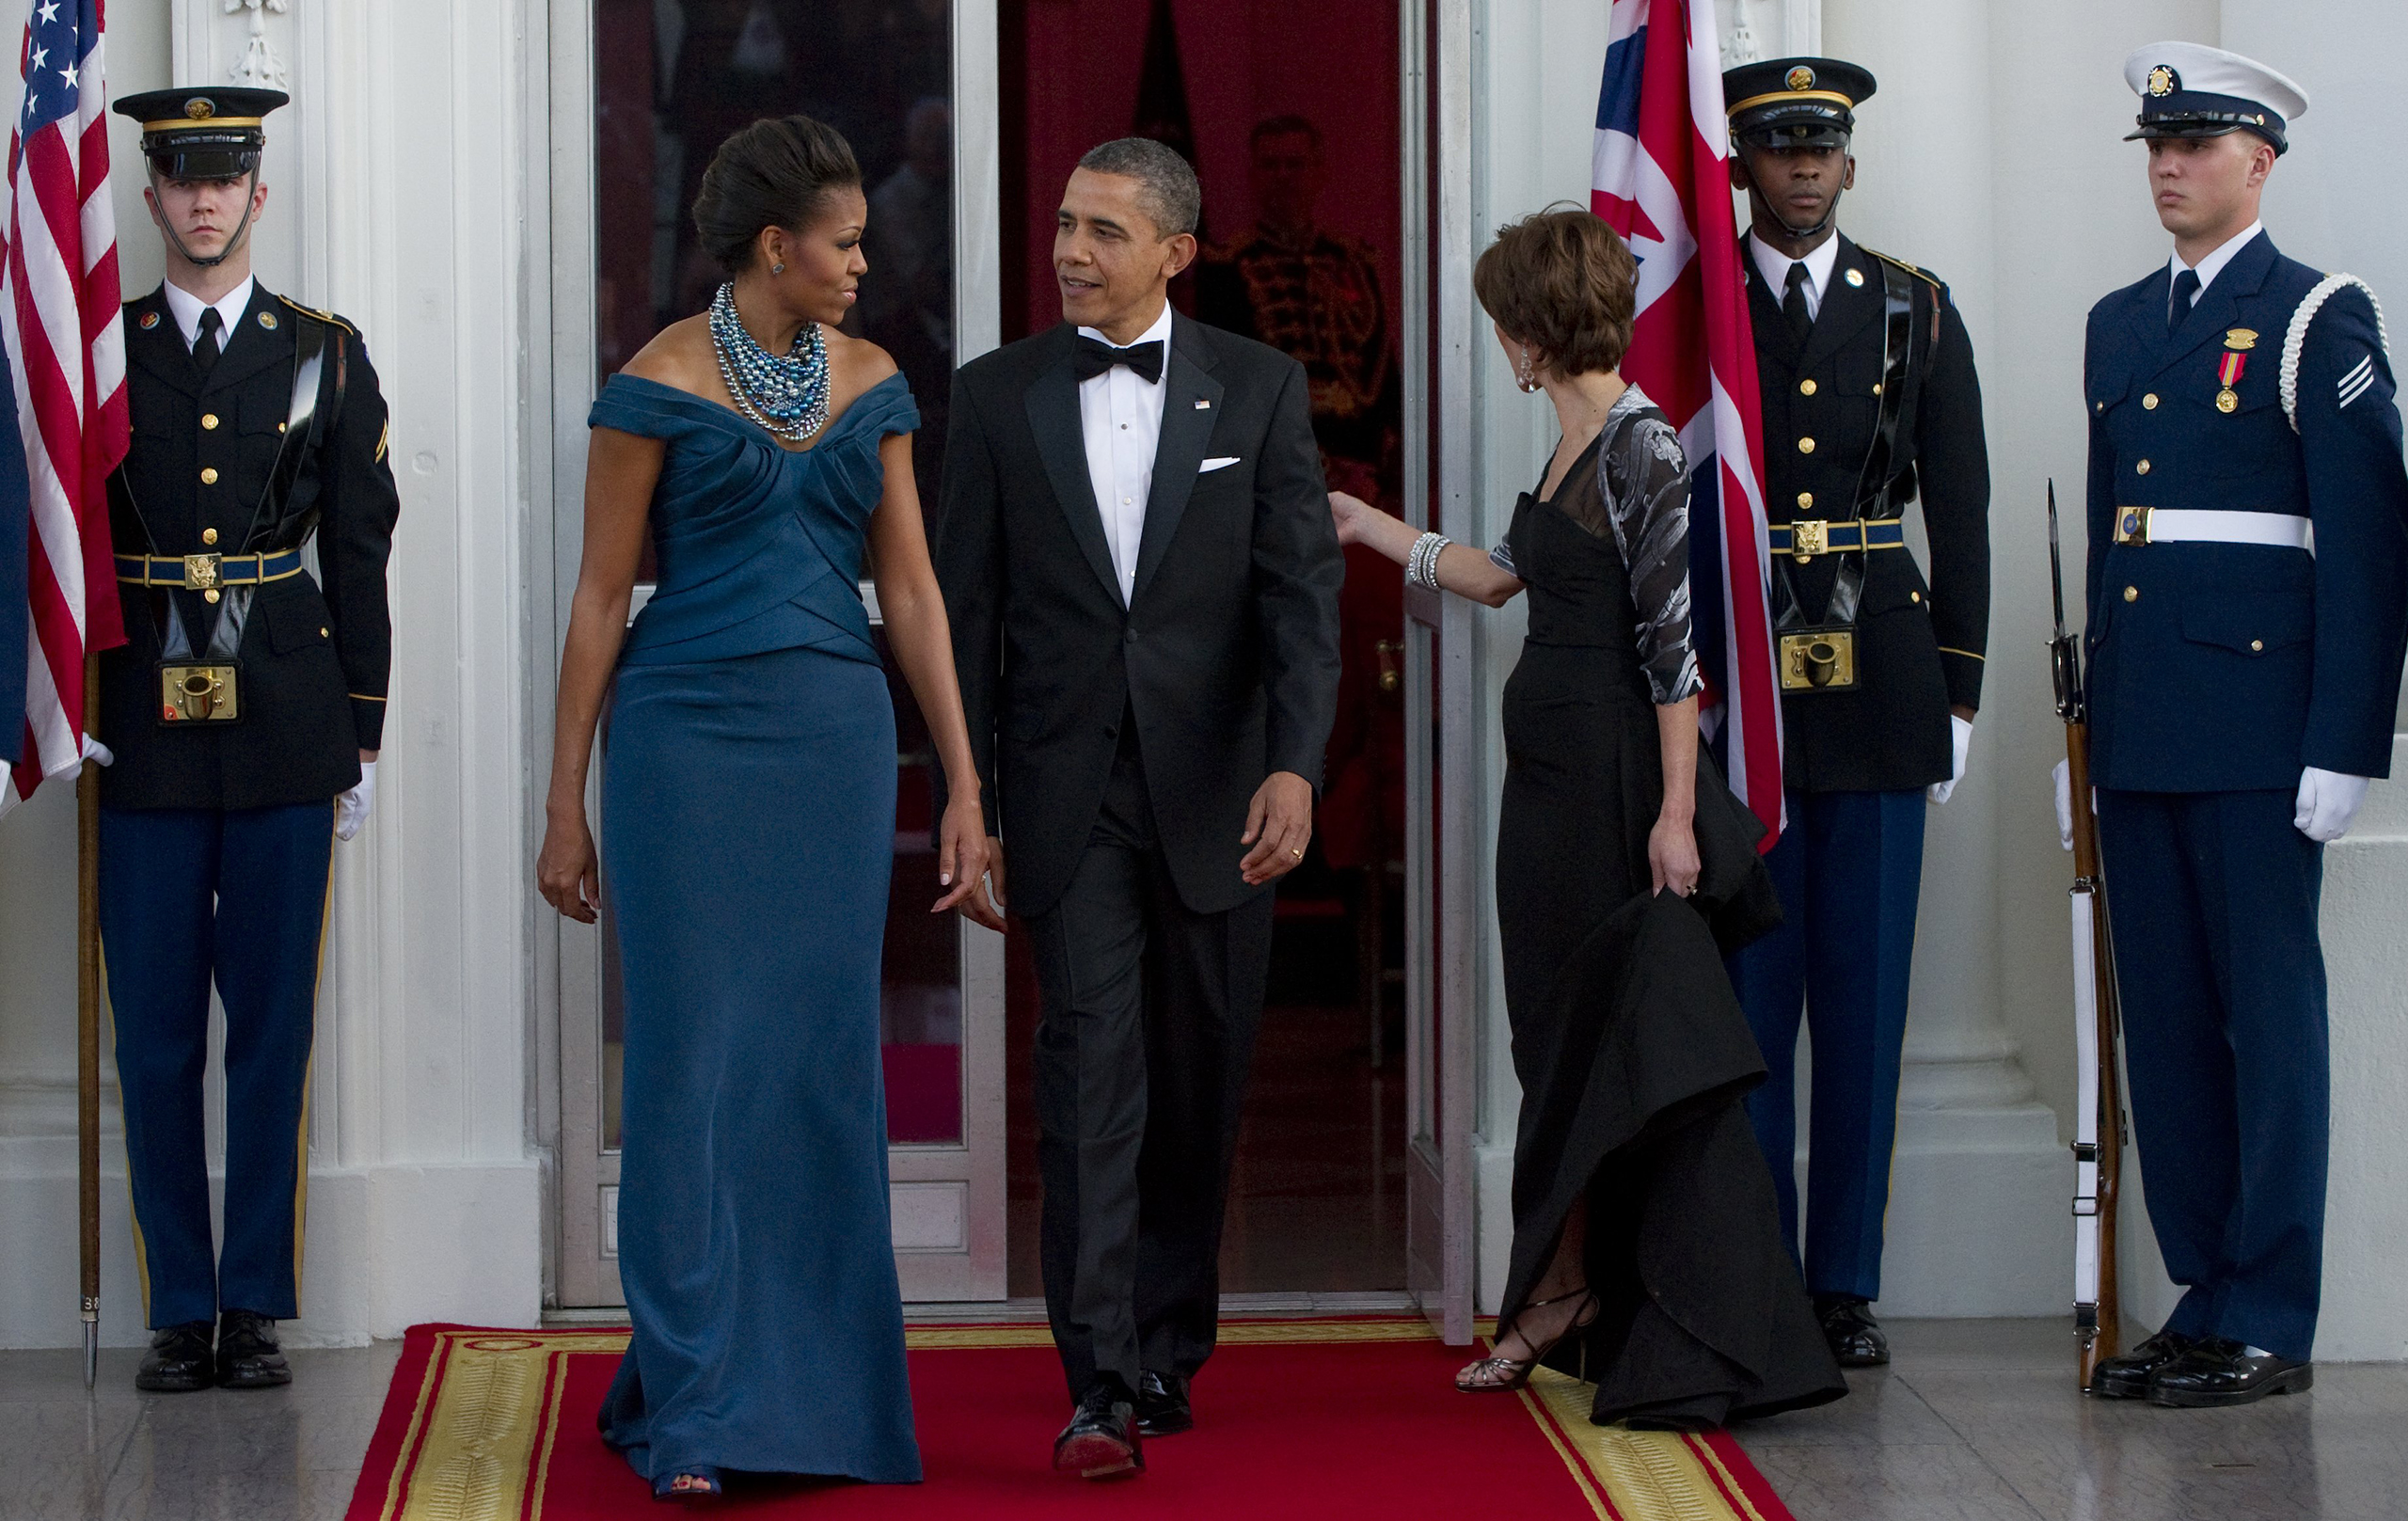 Barack Obama and  Michelle Obama await the arrival of British Prime Minister David Cameron and his wife, Samantha Cameron, prior to a state dinner as part of an official visit on the North Portico of the White House in Washington, D.C., on March 14, 2012.